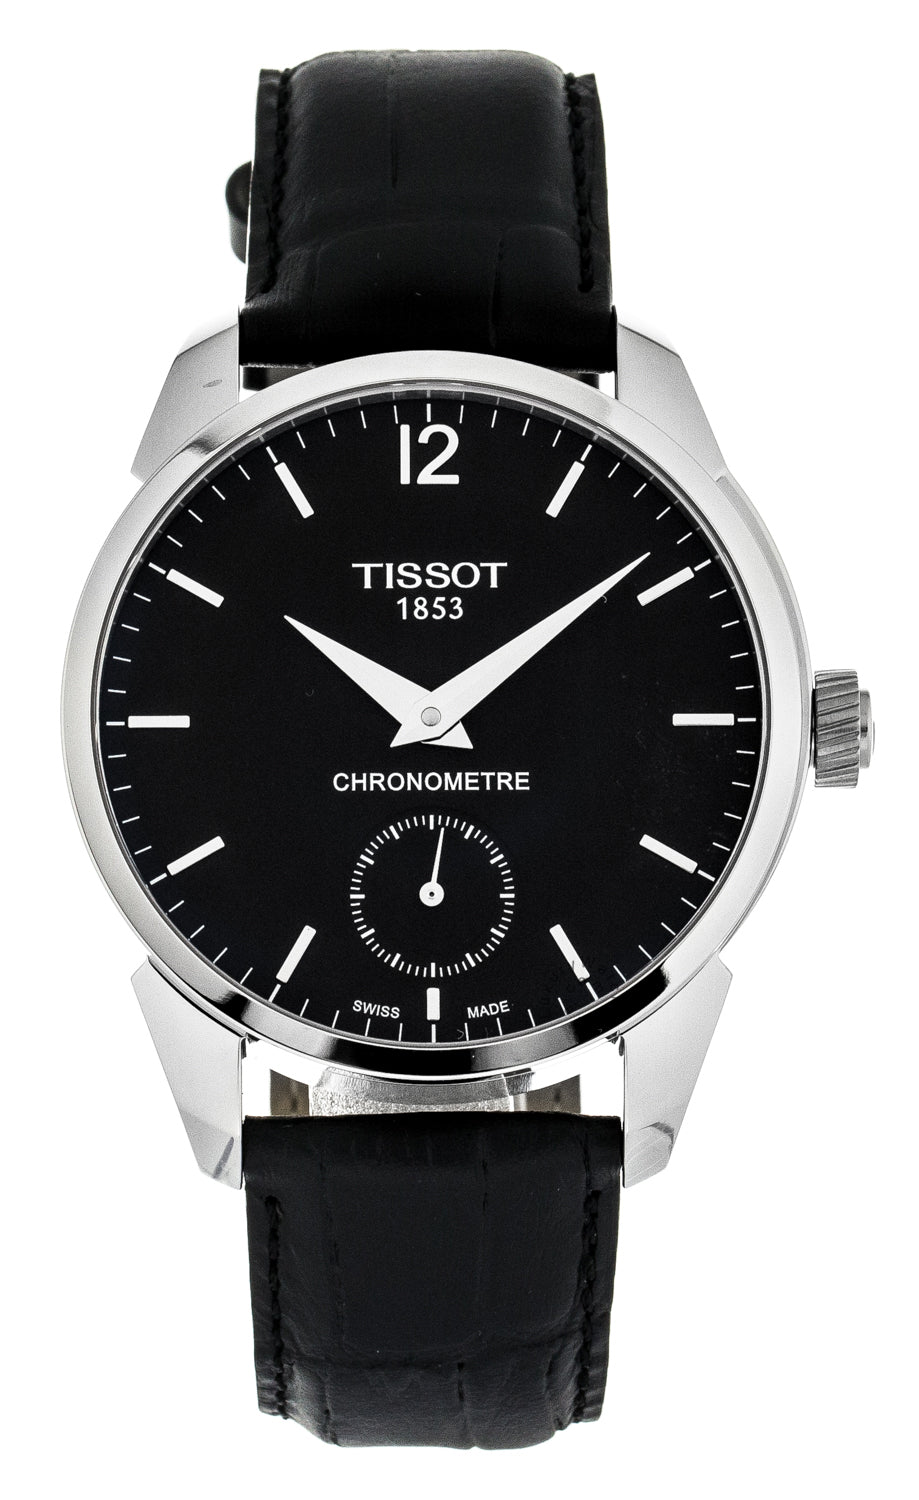 Tissot T Complication Chronomether Leather Men's Watch T0704061605700